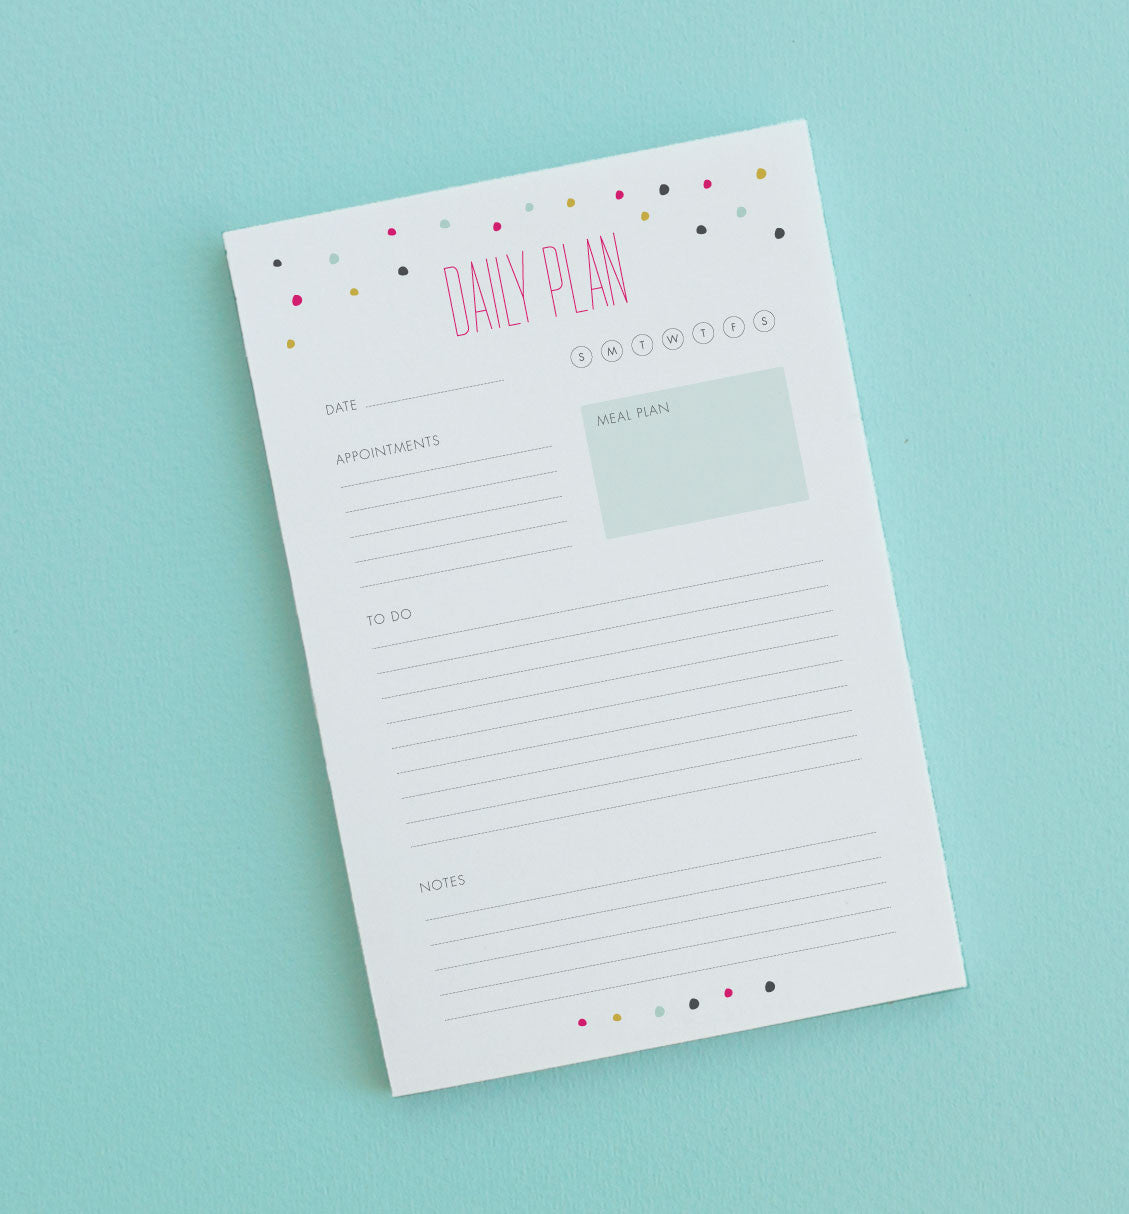 Confetti Daily Plan note pad